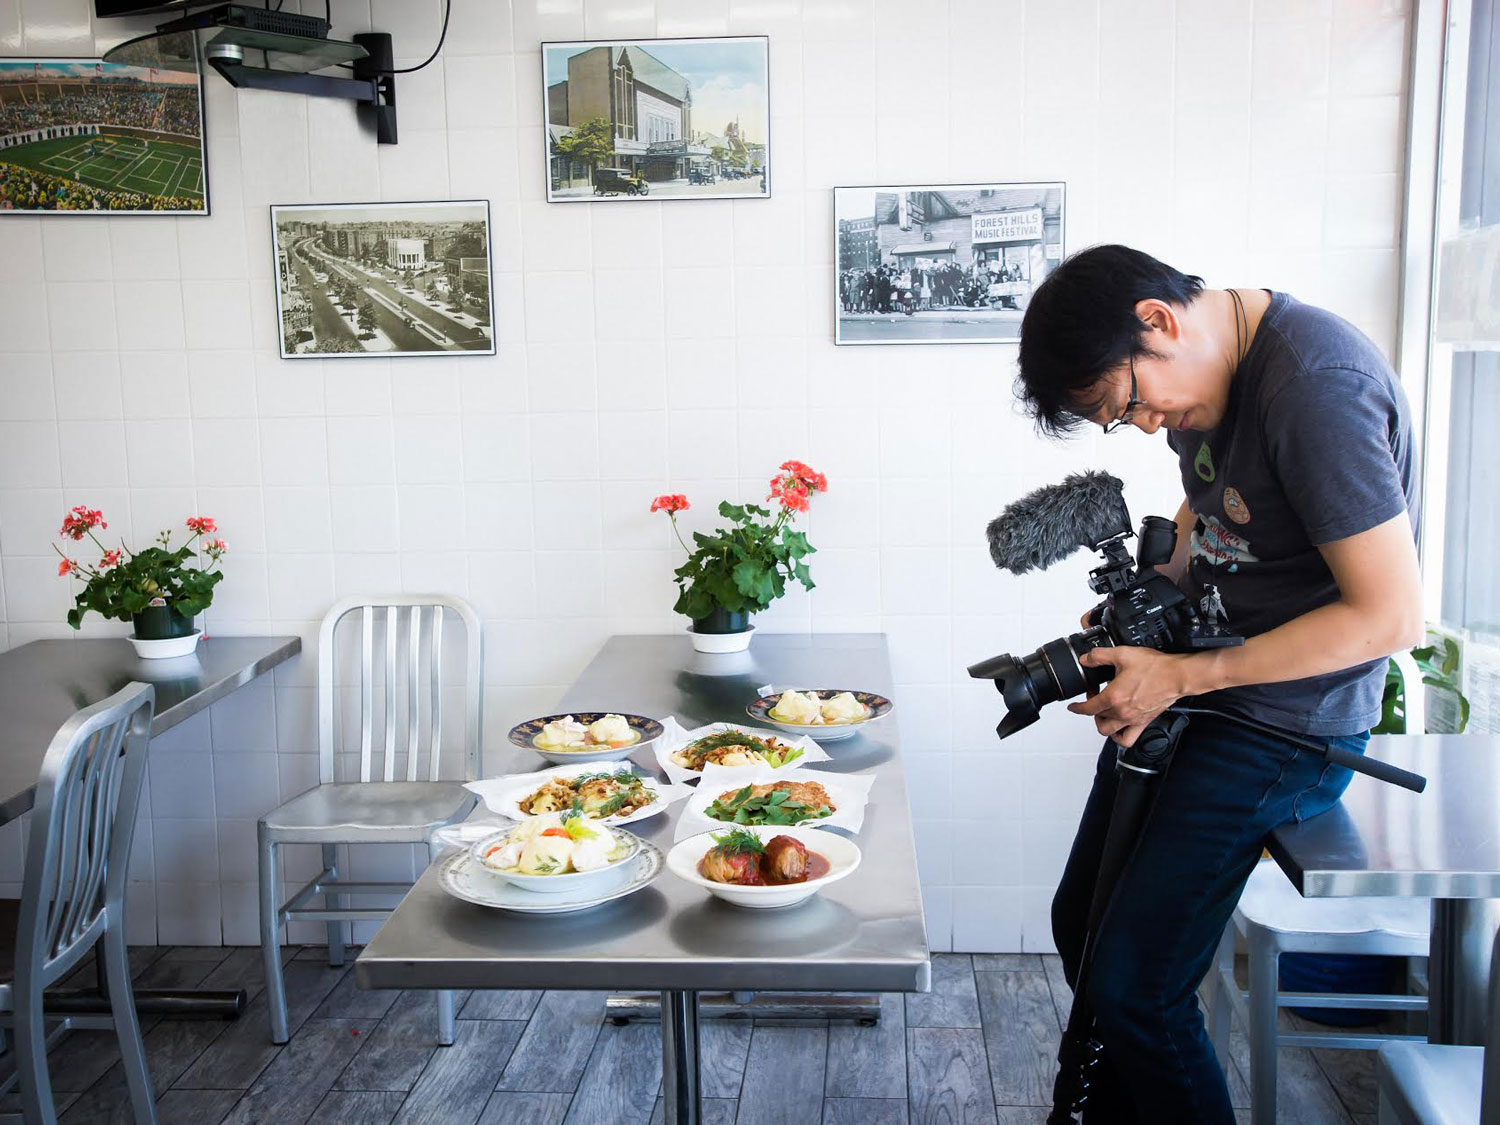 One Minute Meal Captures New York's Food Culture In 60-Second Bites